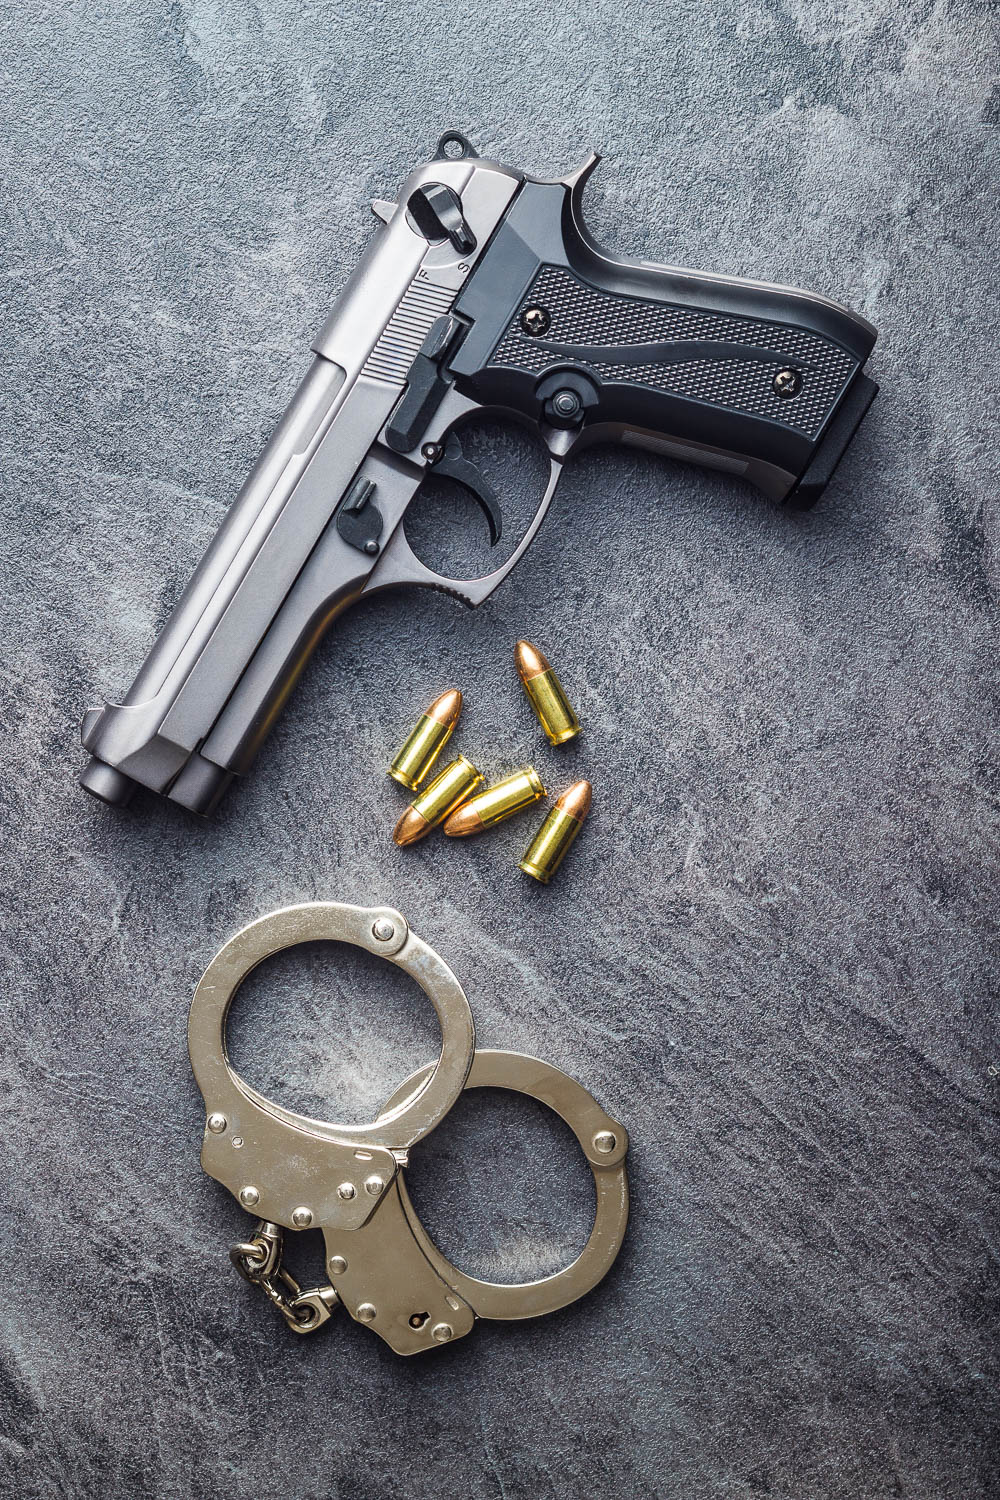 a gun, bullets and handcuffs are out on a table in south florida. Gun and weapon crimes are serious in Florida. A Fort Lauderdale Criminal Defense Attorney can help defend your rights and your future.